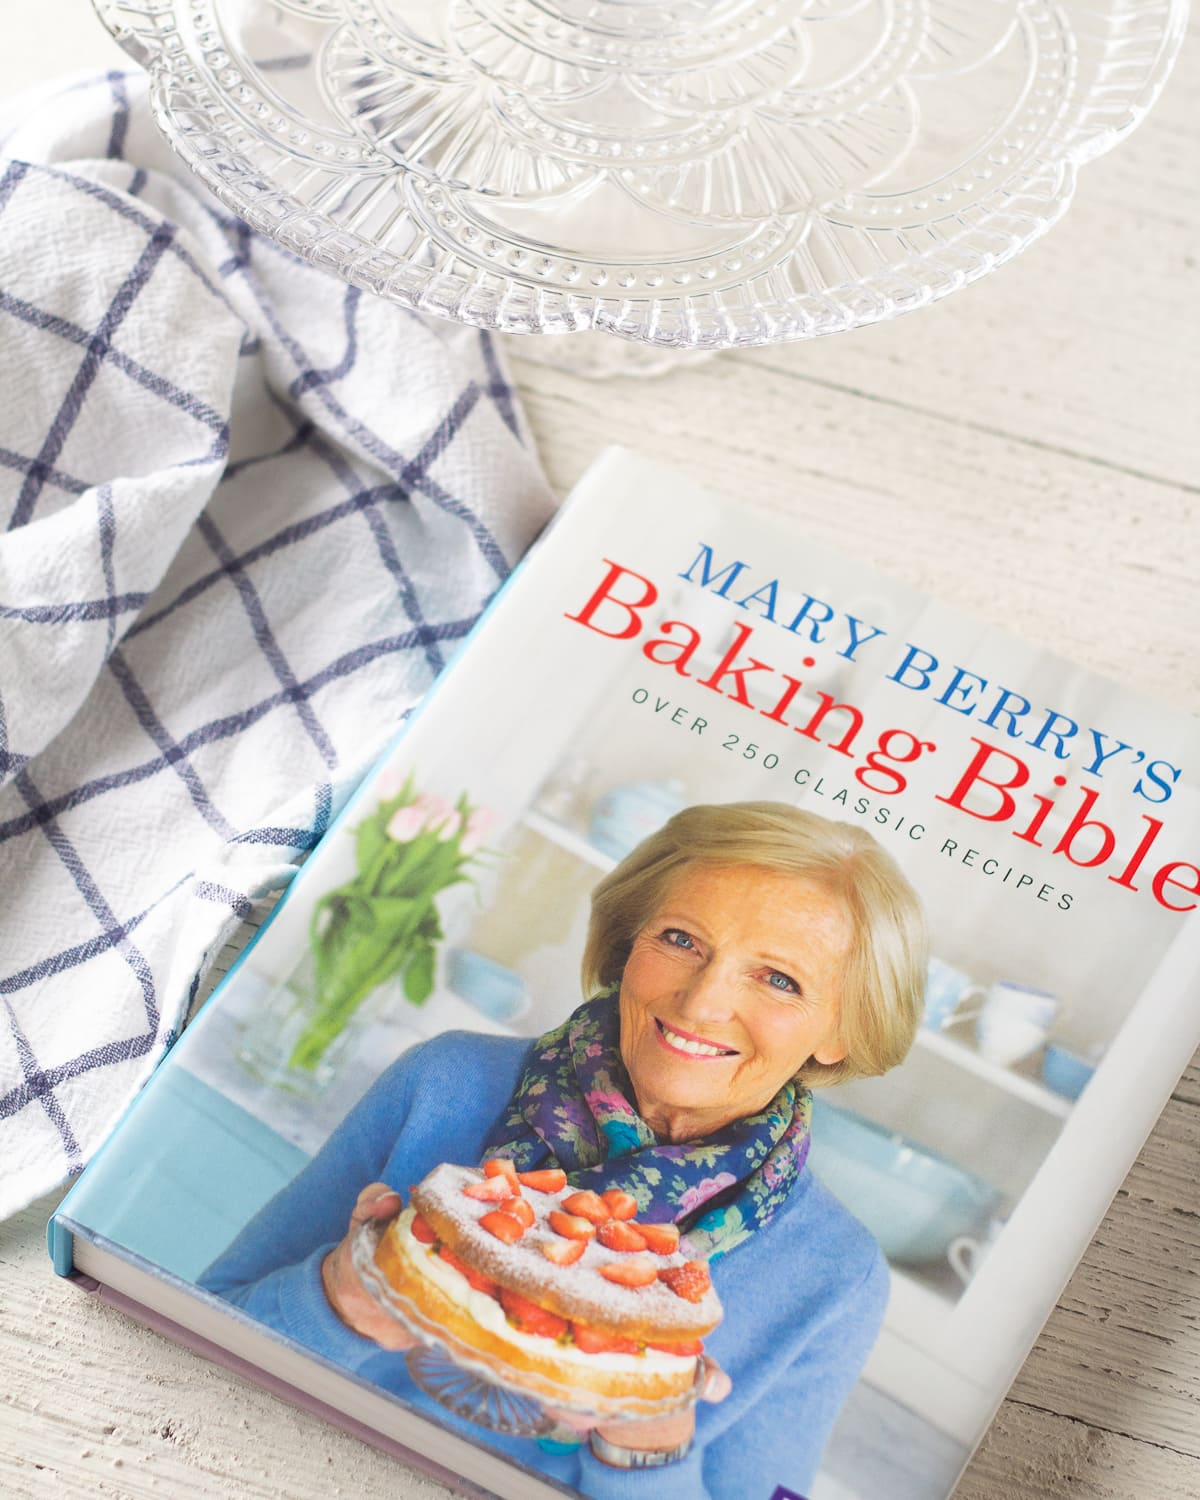 Mary Berry's Baking Bible, a cake stand, and an IKEA towel on a wooden surface.